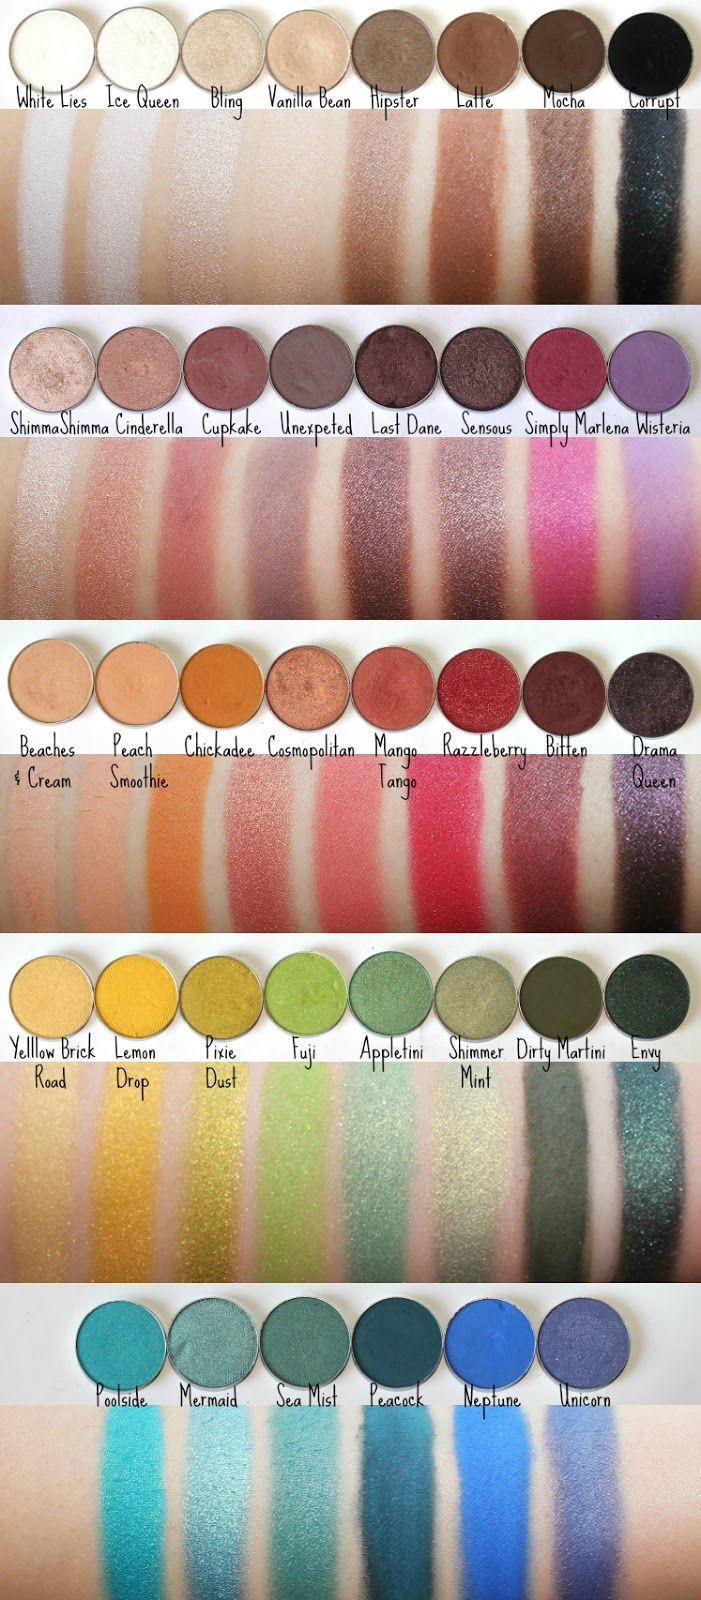 Mac Single Eyeshadow Collection: 25+ Best Ideas About Colourpop Eyeshadow Swatches On